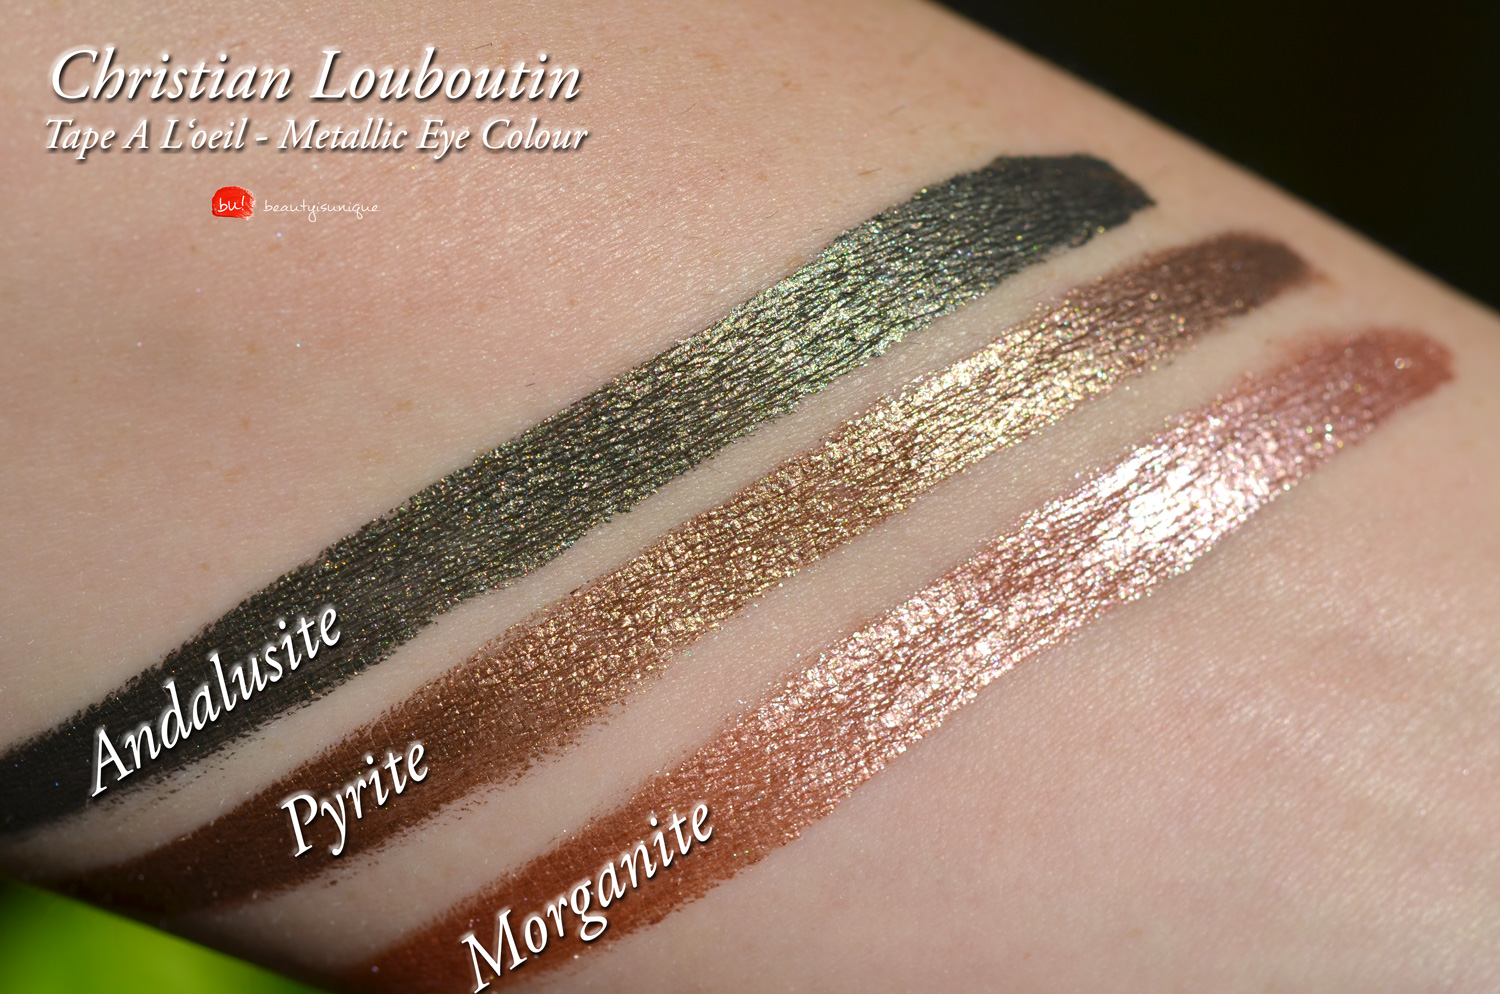 louboutin-tape-a-l'oeil-eye-colour-swatches